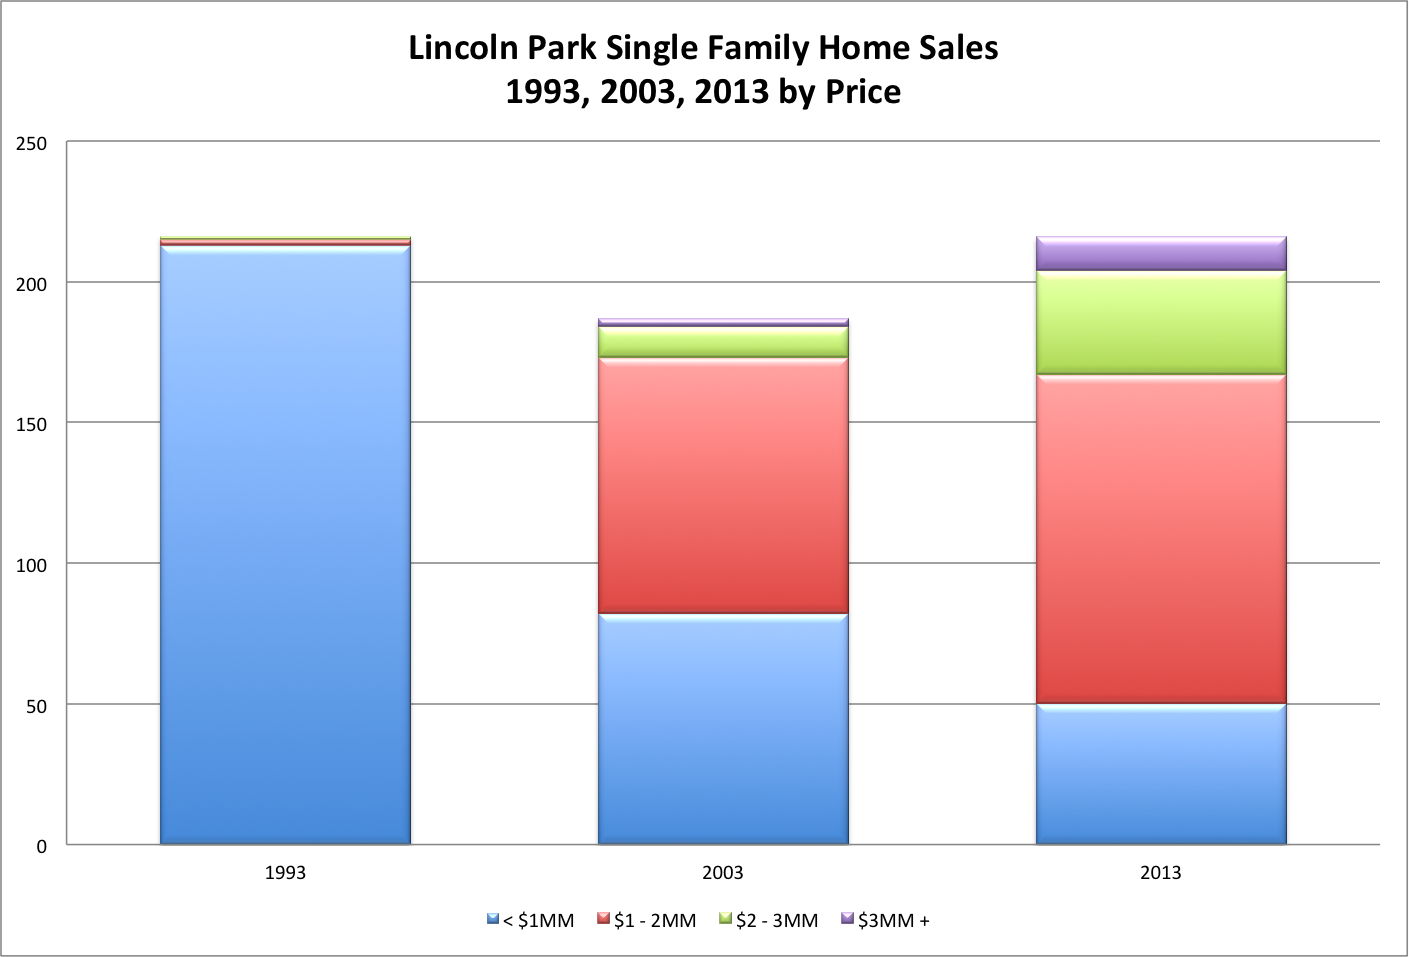 Lincoln Park Single Family Home Sales